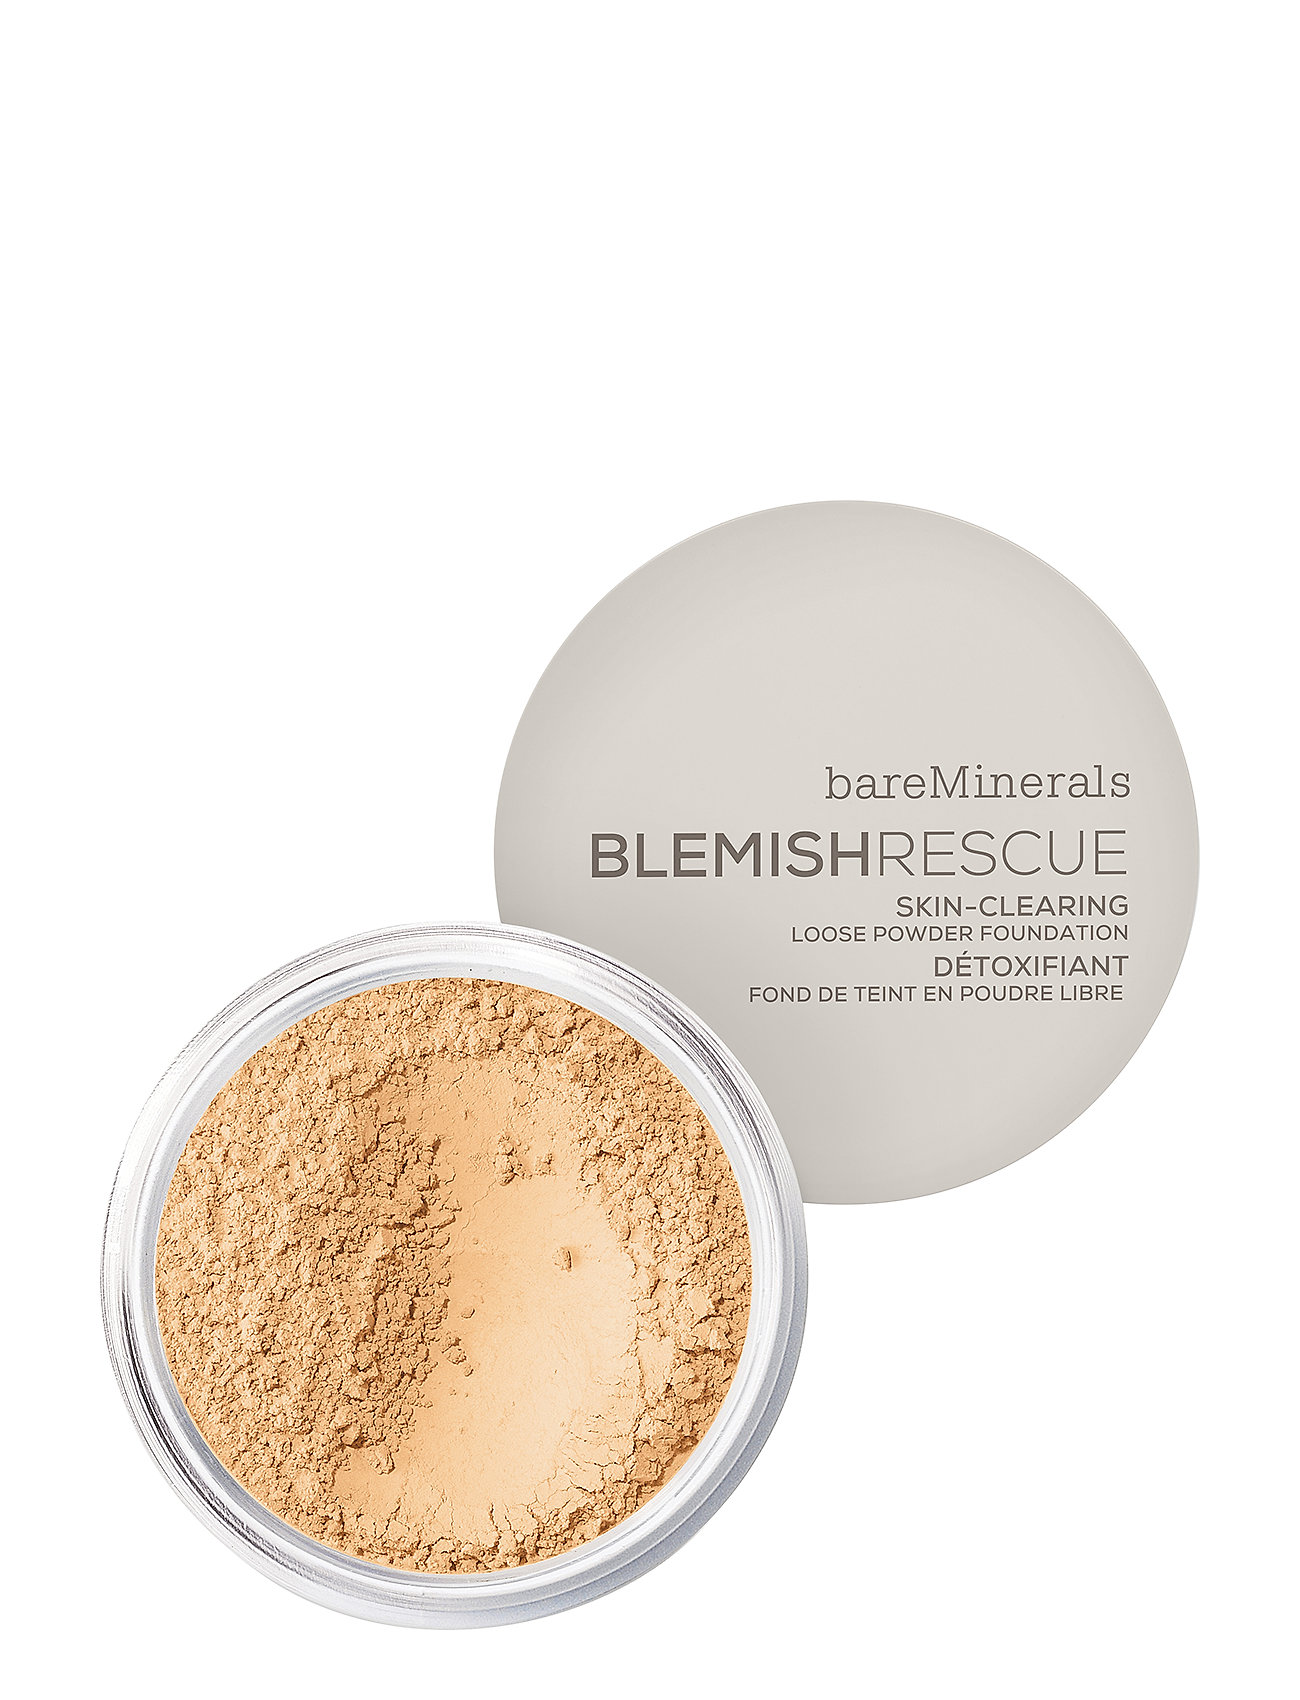 Image of Blemish Rescue Skin-Clearing Loose Powder Foundation Foundation Makeup BareMinerals (3393714563)